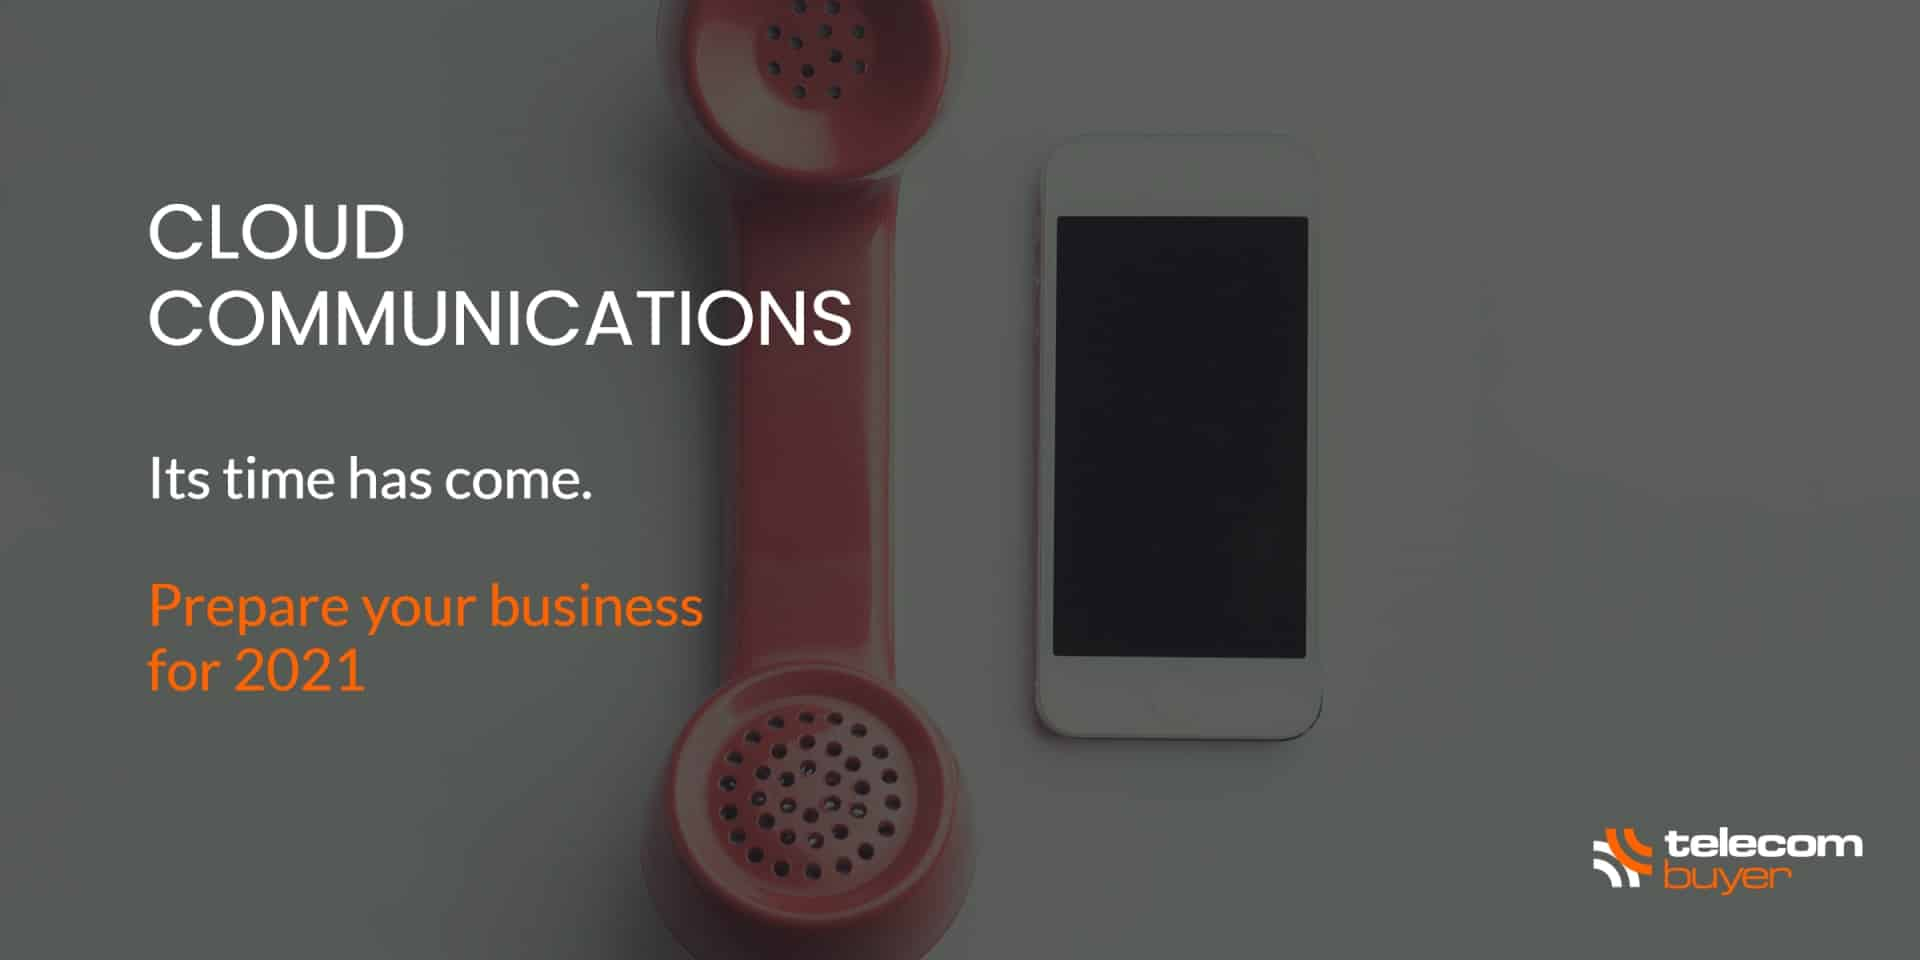 Cloud Communications Phone and Mobile